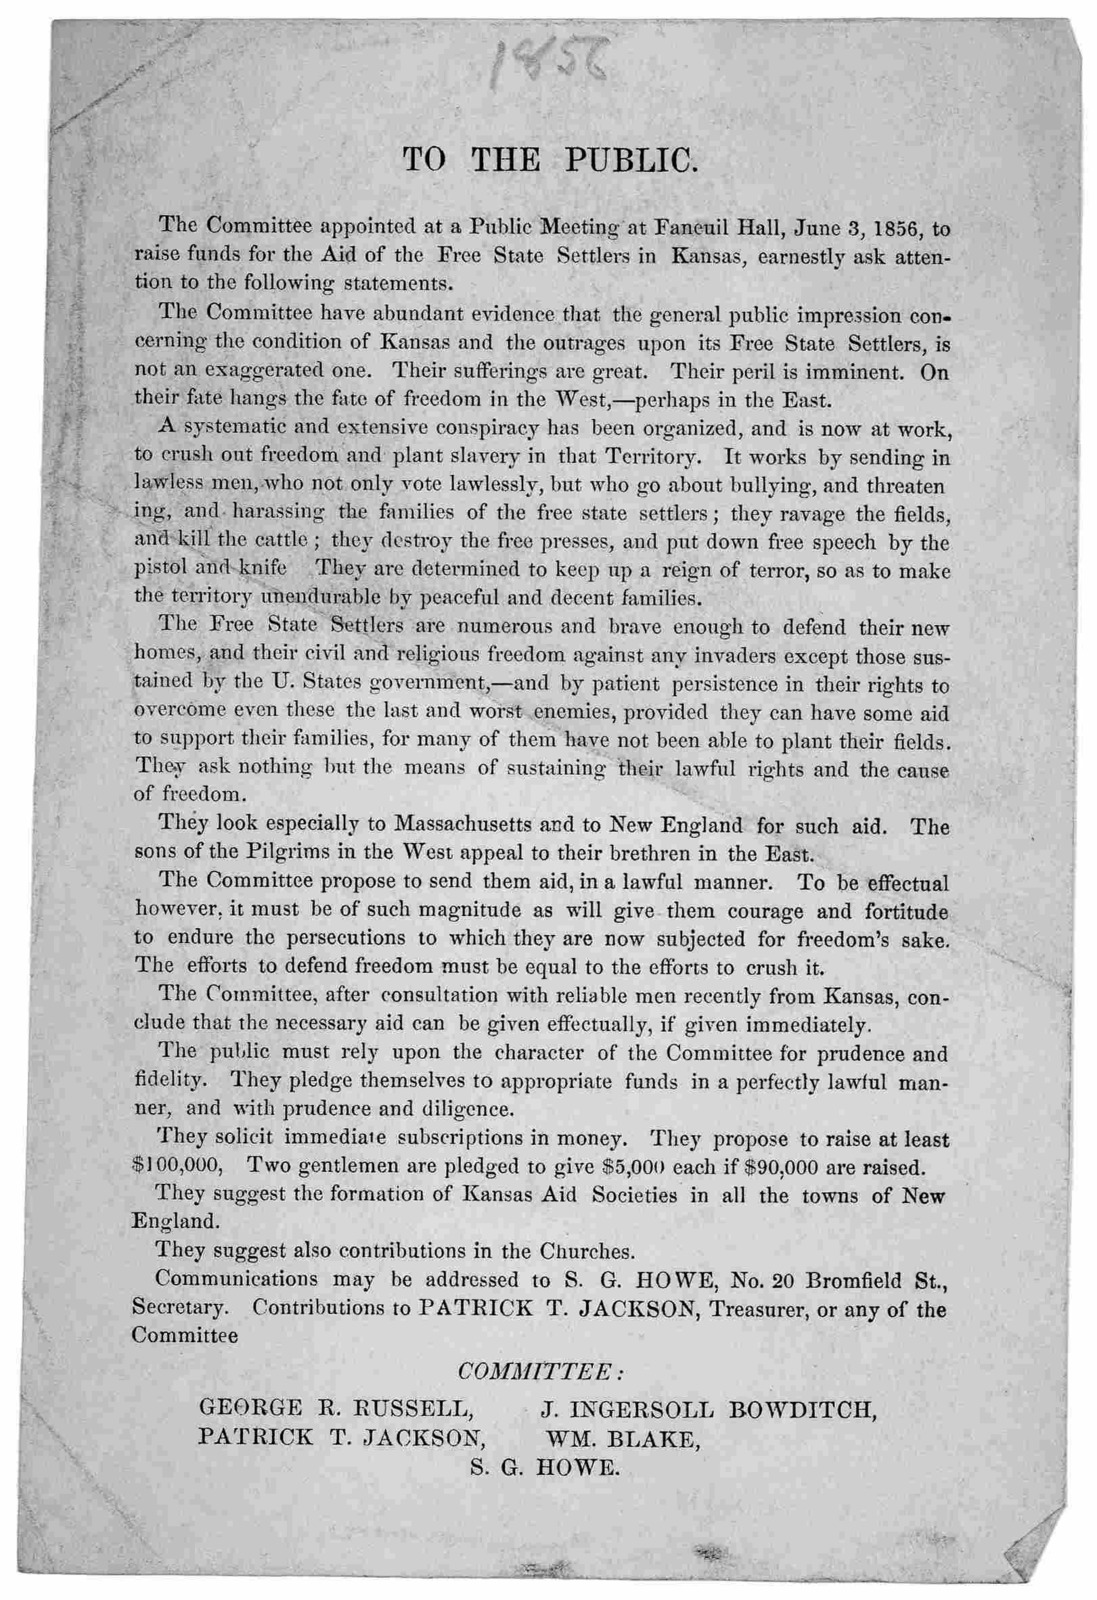 To the public. The Committee appointed at a public meeting at Faneuil Hall, June 3, 1856 to raise funds for the aid of the free state settlers in Kansas, earnestly ask attention to the following statements ... Contributions to Patrick T. Jackson